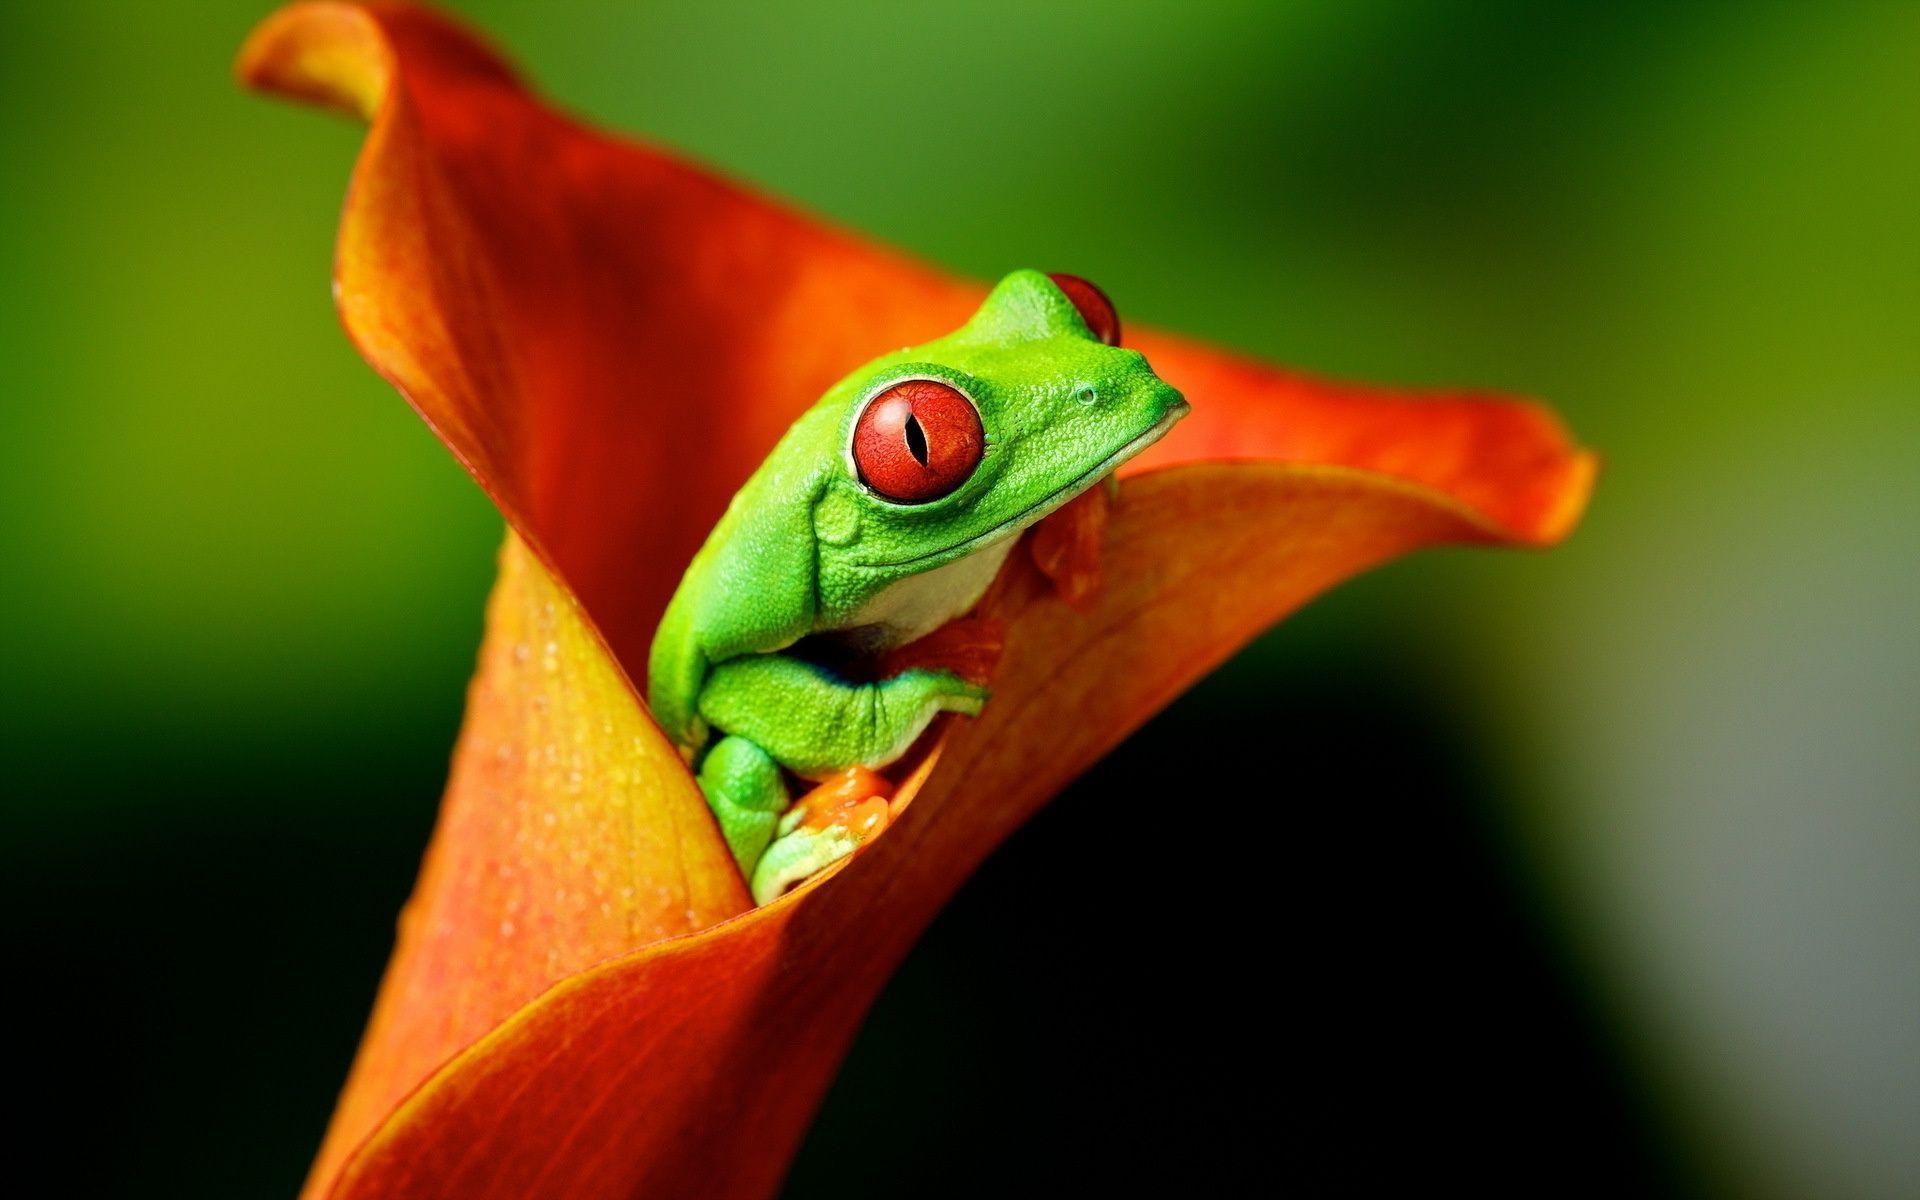 Frog Wallpapers 44314 1920x1200 px ~ HDWallSource